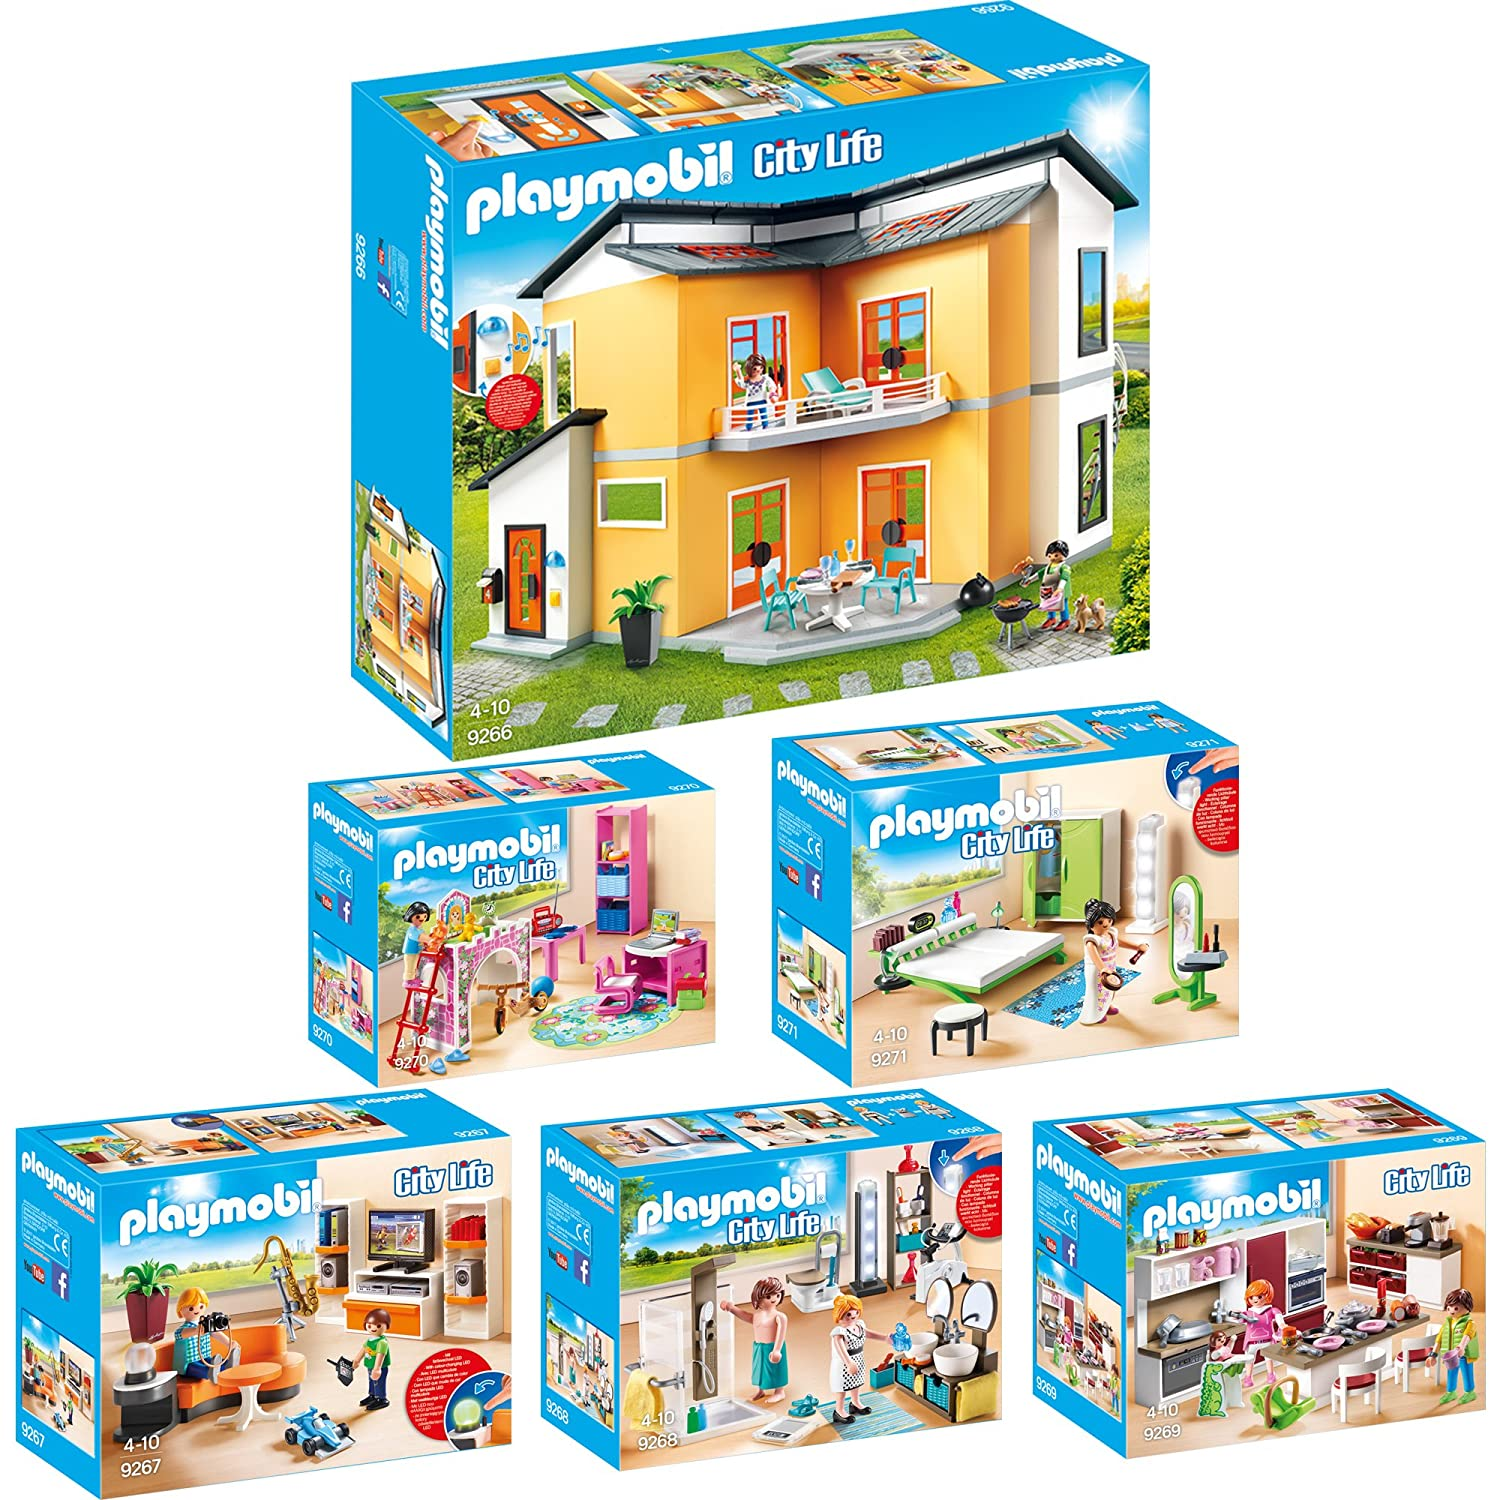 playmobil modernes wohnzimmer : Playmobil City Life 6er Set 9266 9267 9268 9269 9270 9271